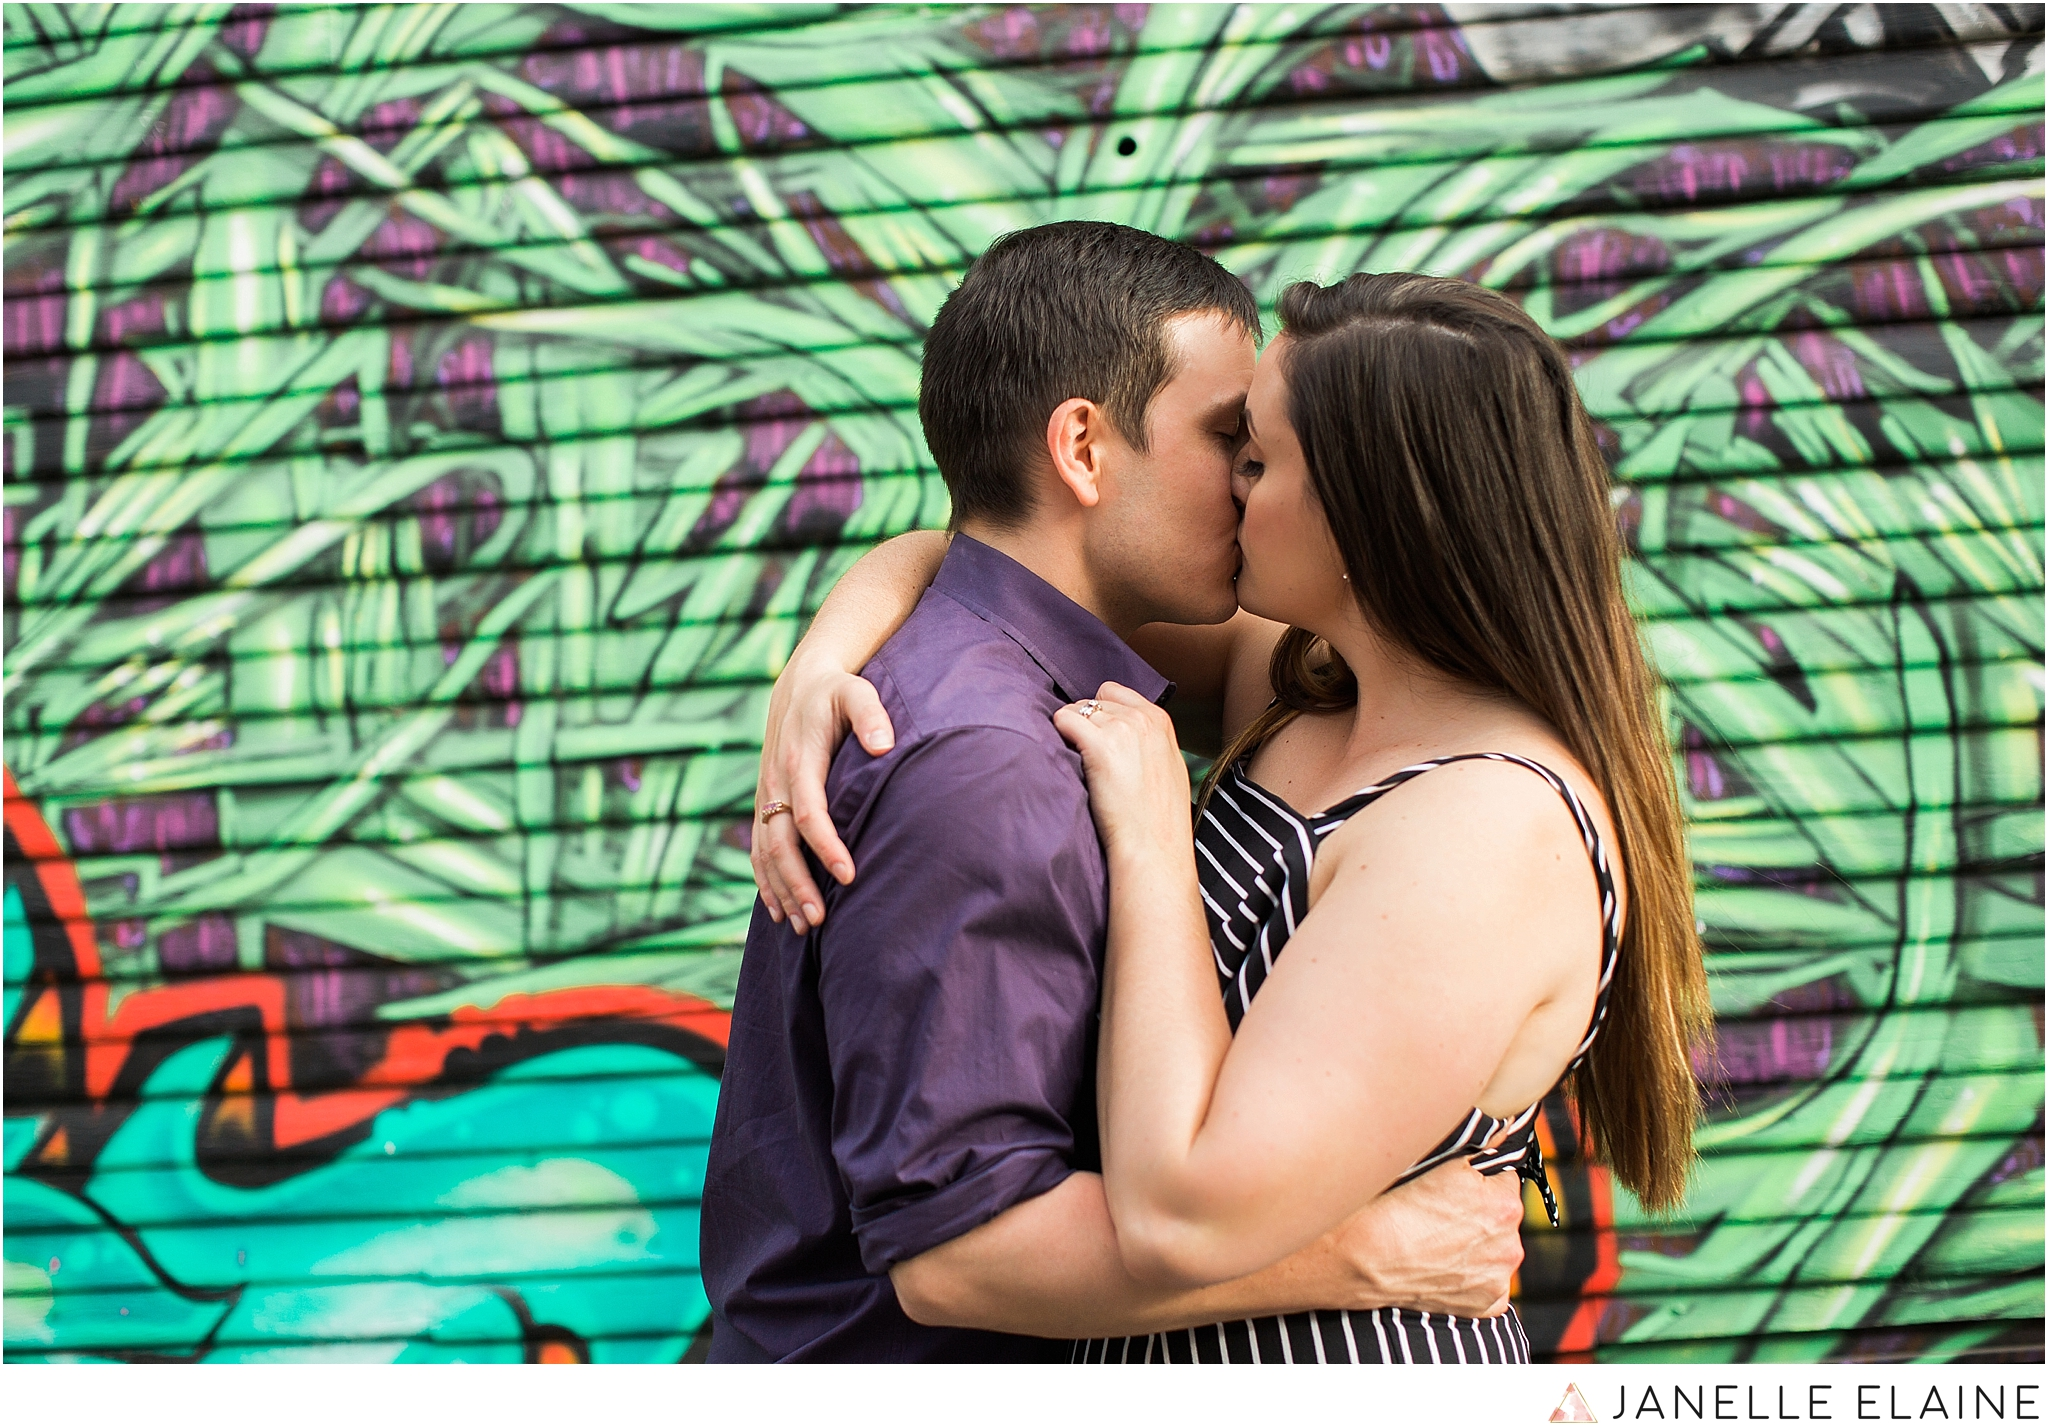 karen ethan-georgetown engagement photos-seattle-janelle elaine photography-159.jpg